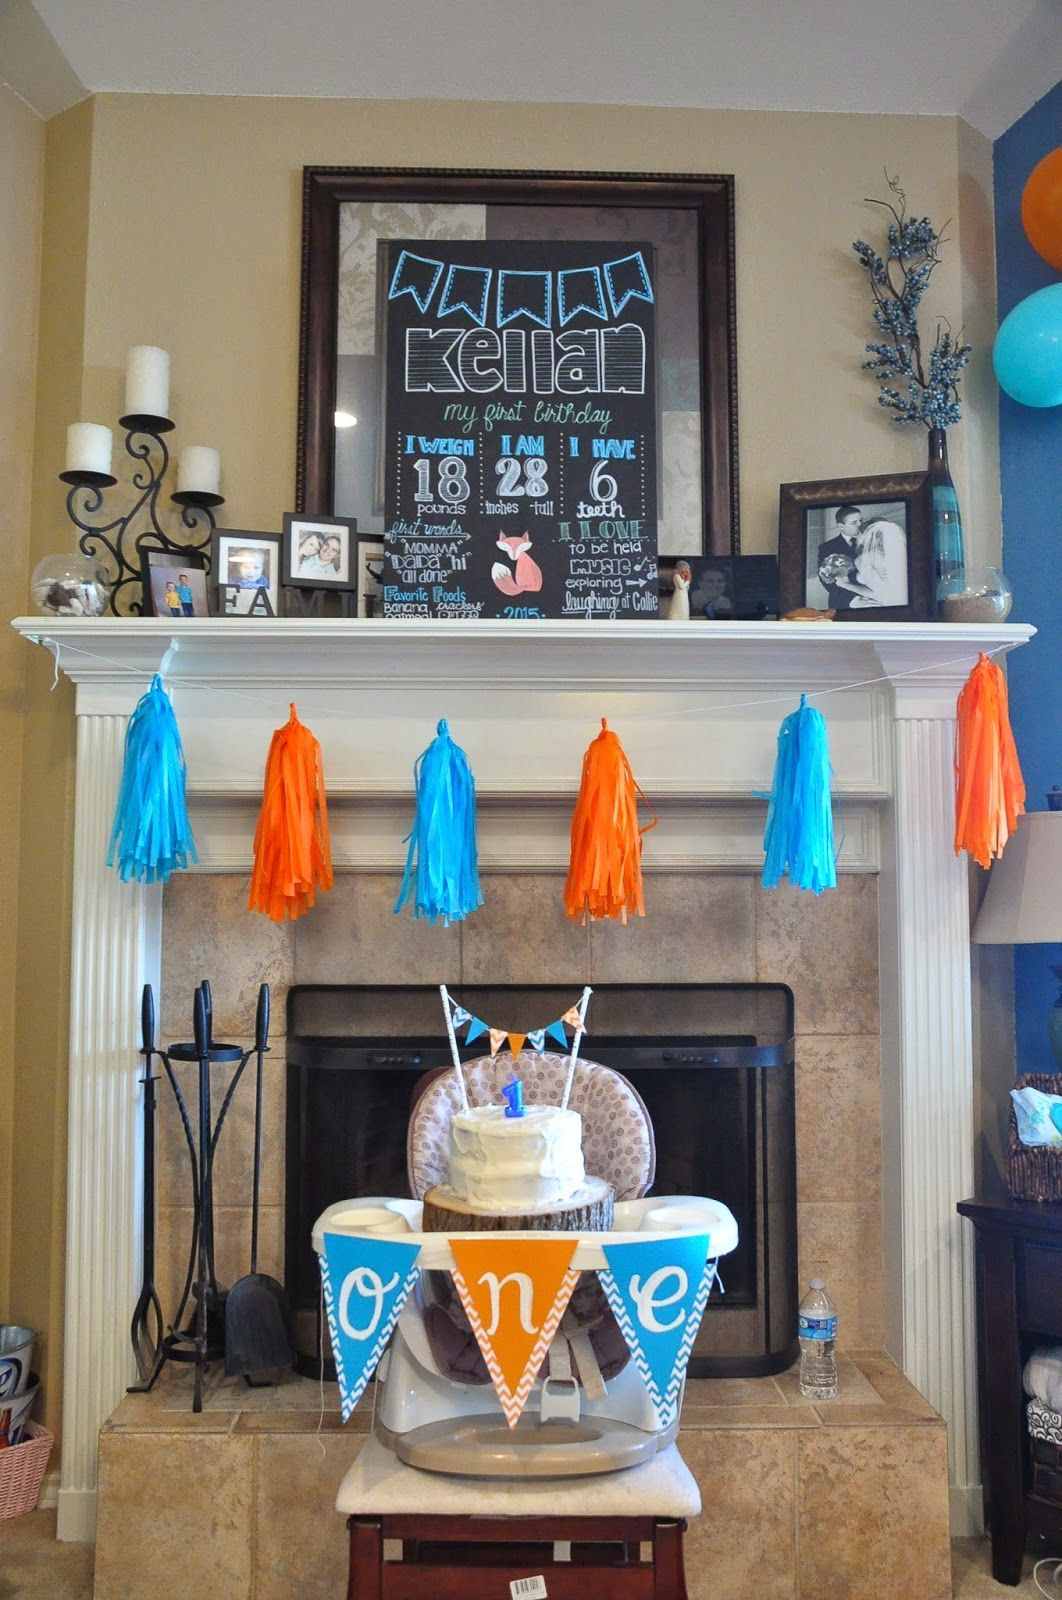 Keeping Up With The Morgans: Kellan Joshua - 1 YEAR!